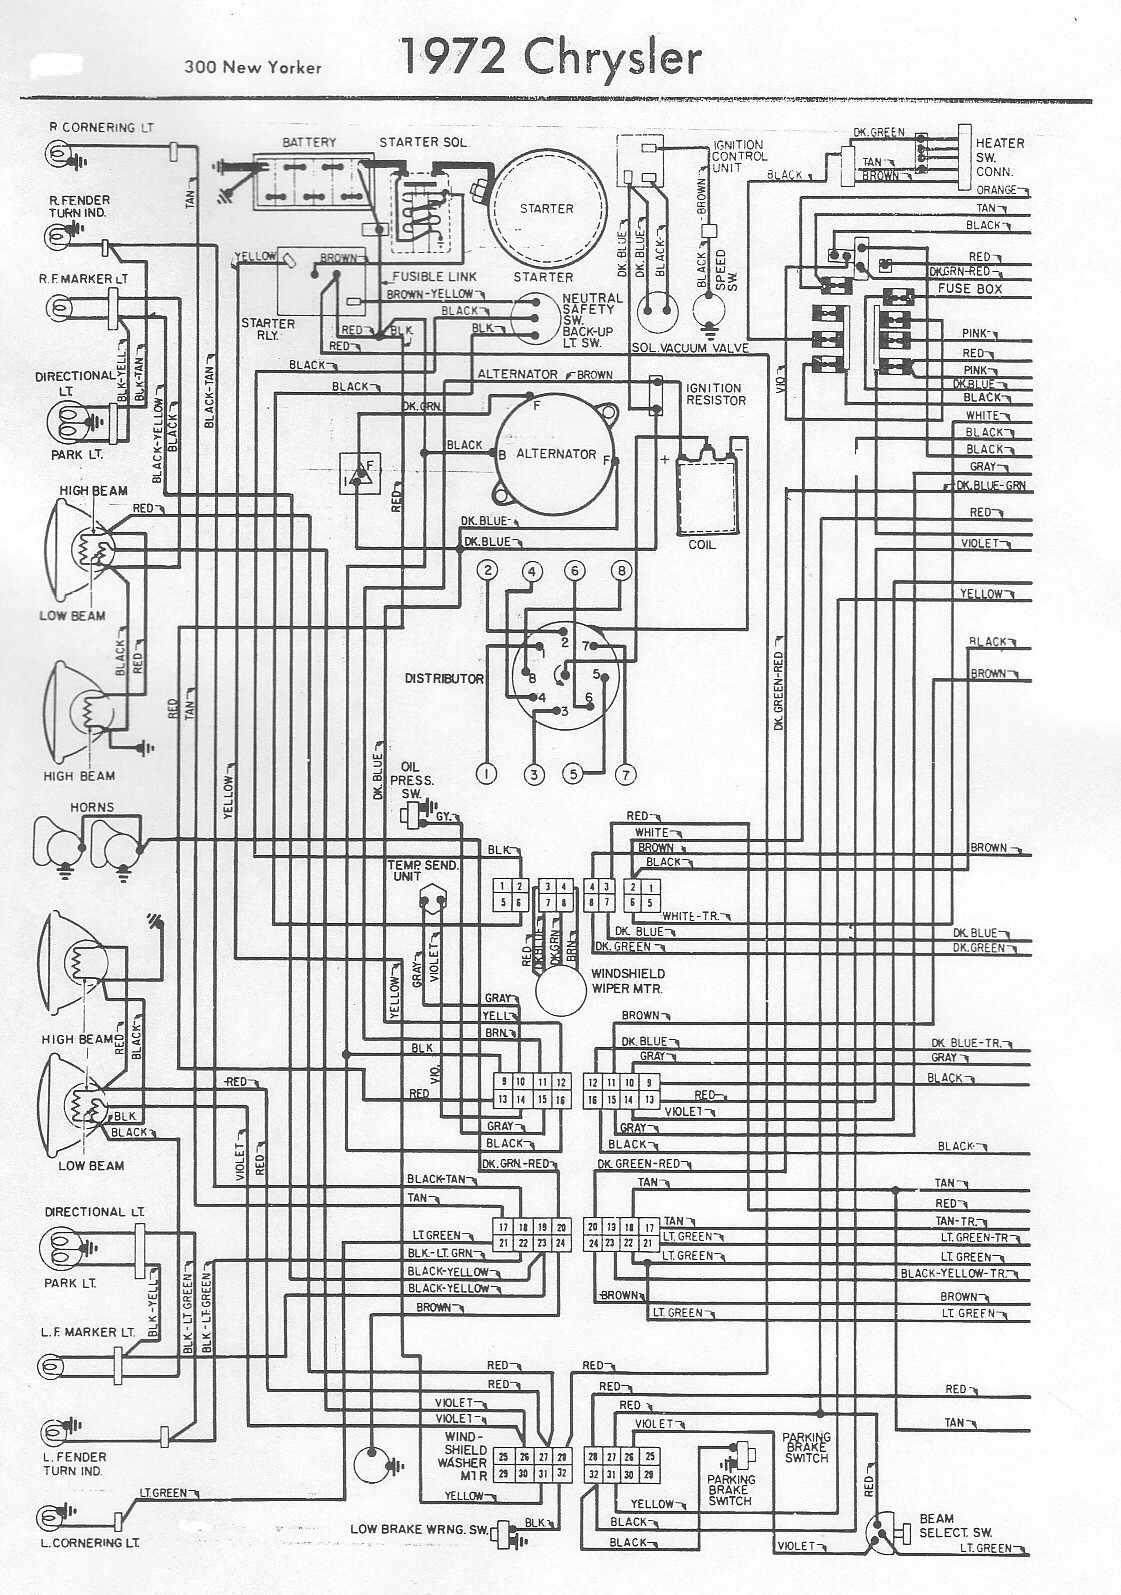 1969 Chrysler 300 Wiring Diagram Free Diagrams 1973 Opel Gt 2008